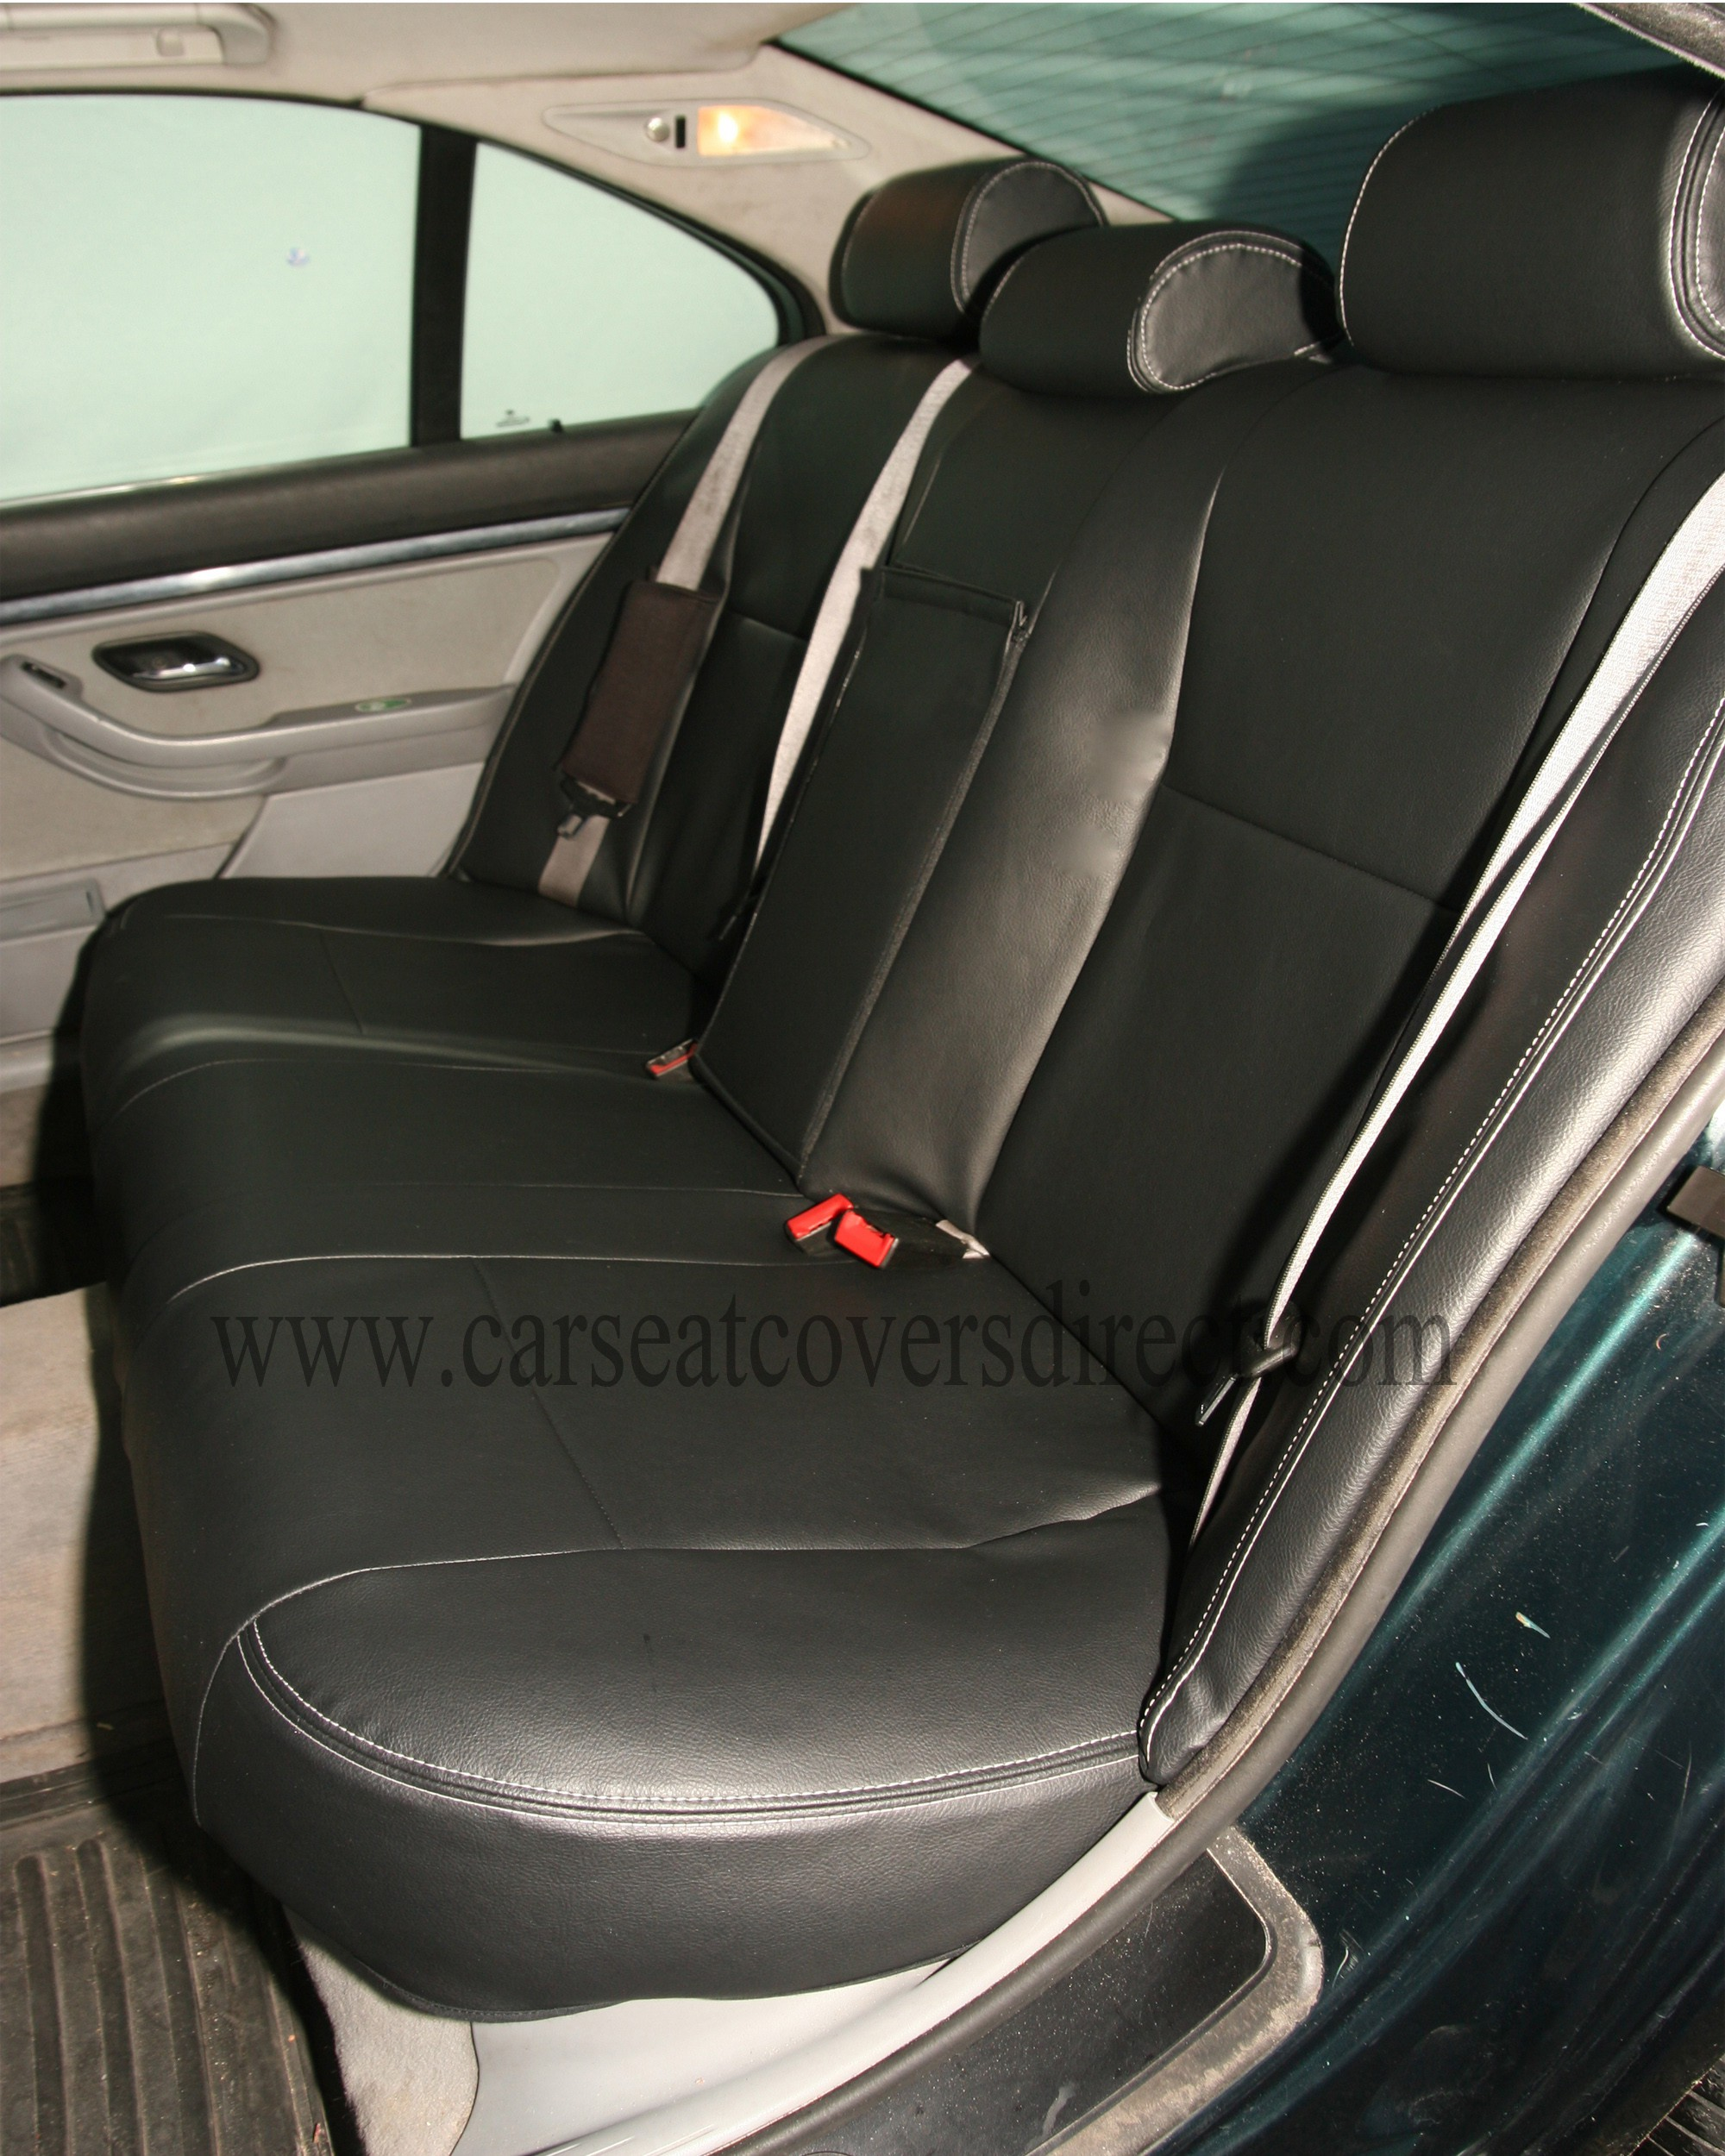 BMW 5 SERIES E39 Seat Covers Car Seat Covers Direct